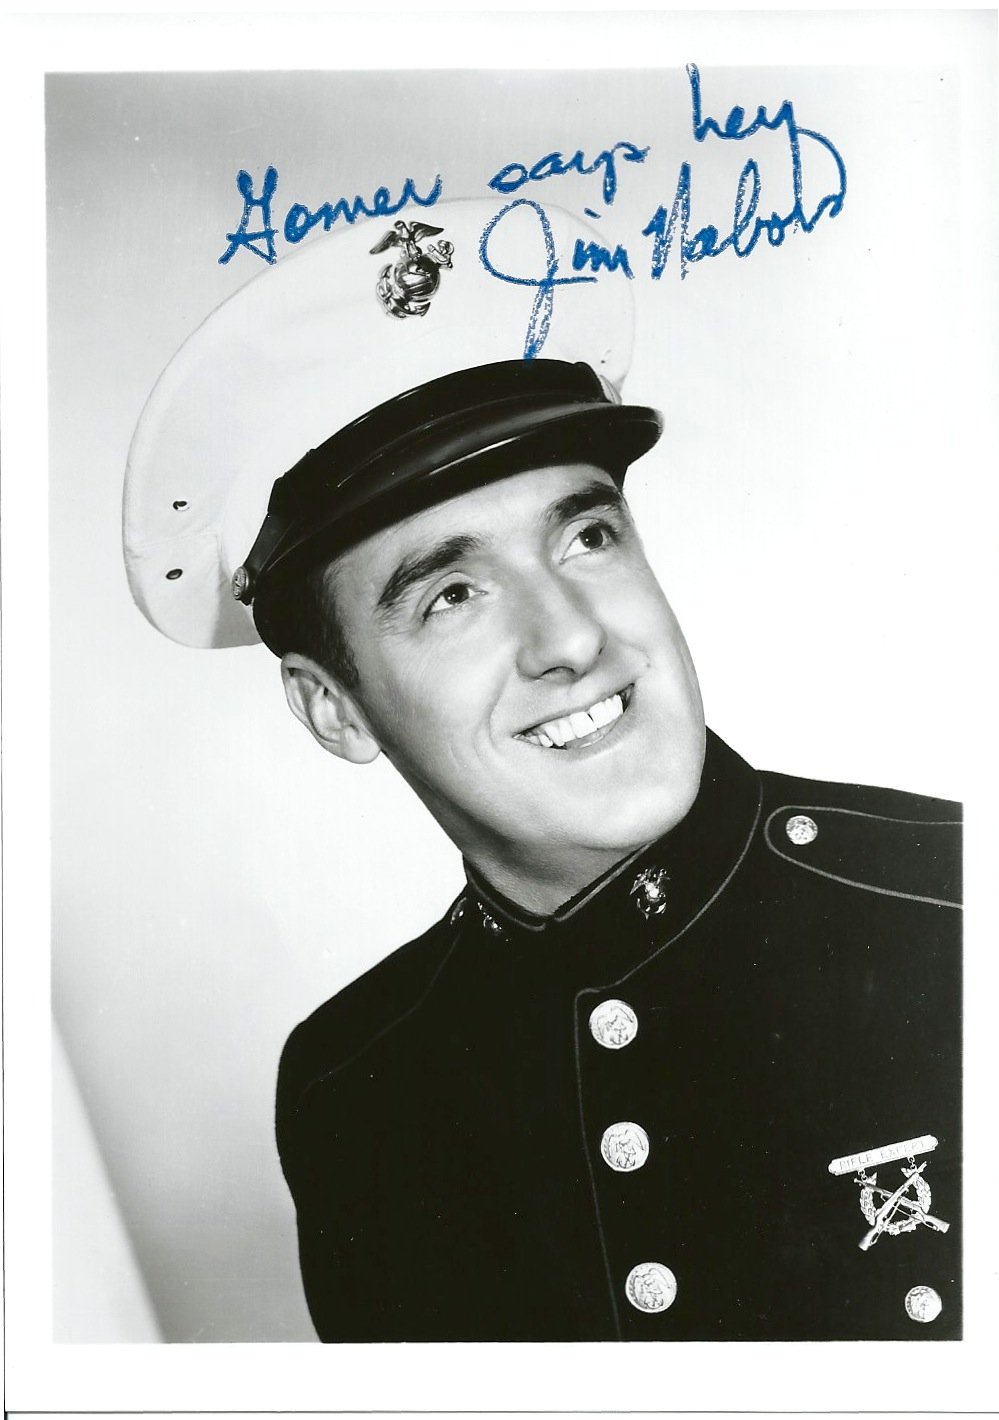 singles in gomer Jim nabors is an entertainer of international status whose ability to combine the charm of a sophisticated modern country gentleman  jim nabors (gomer pyle).